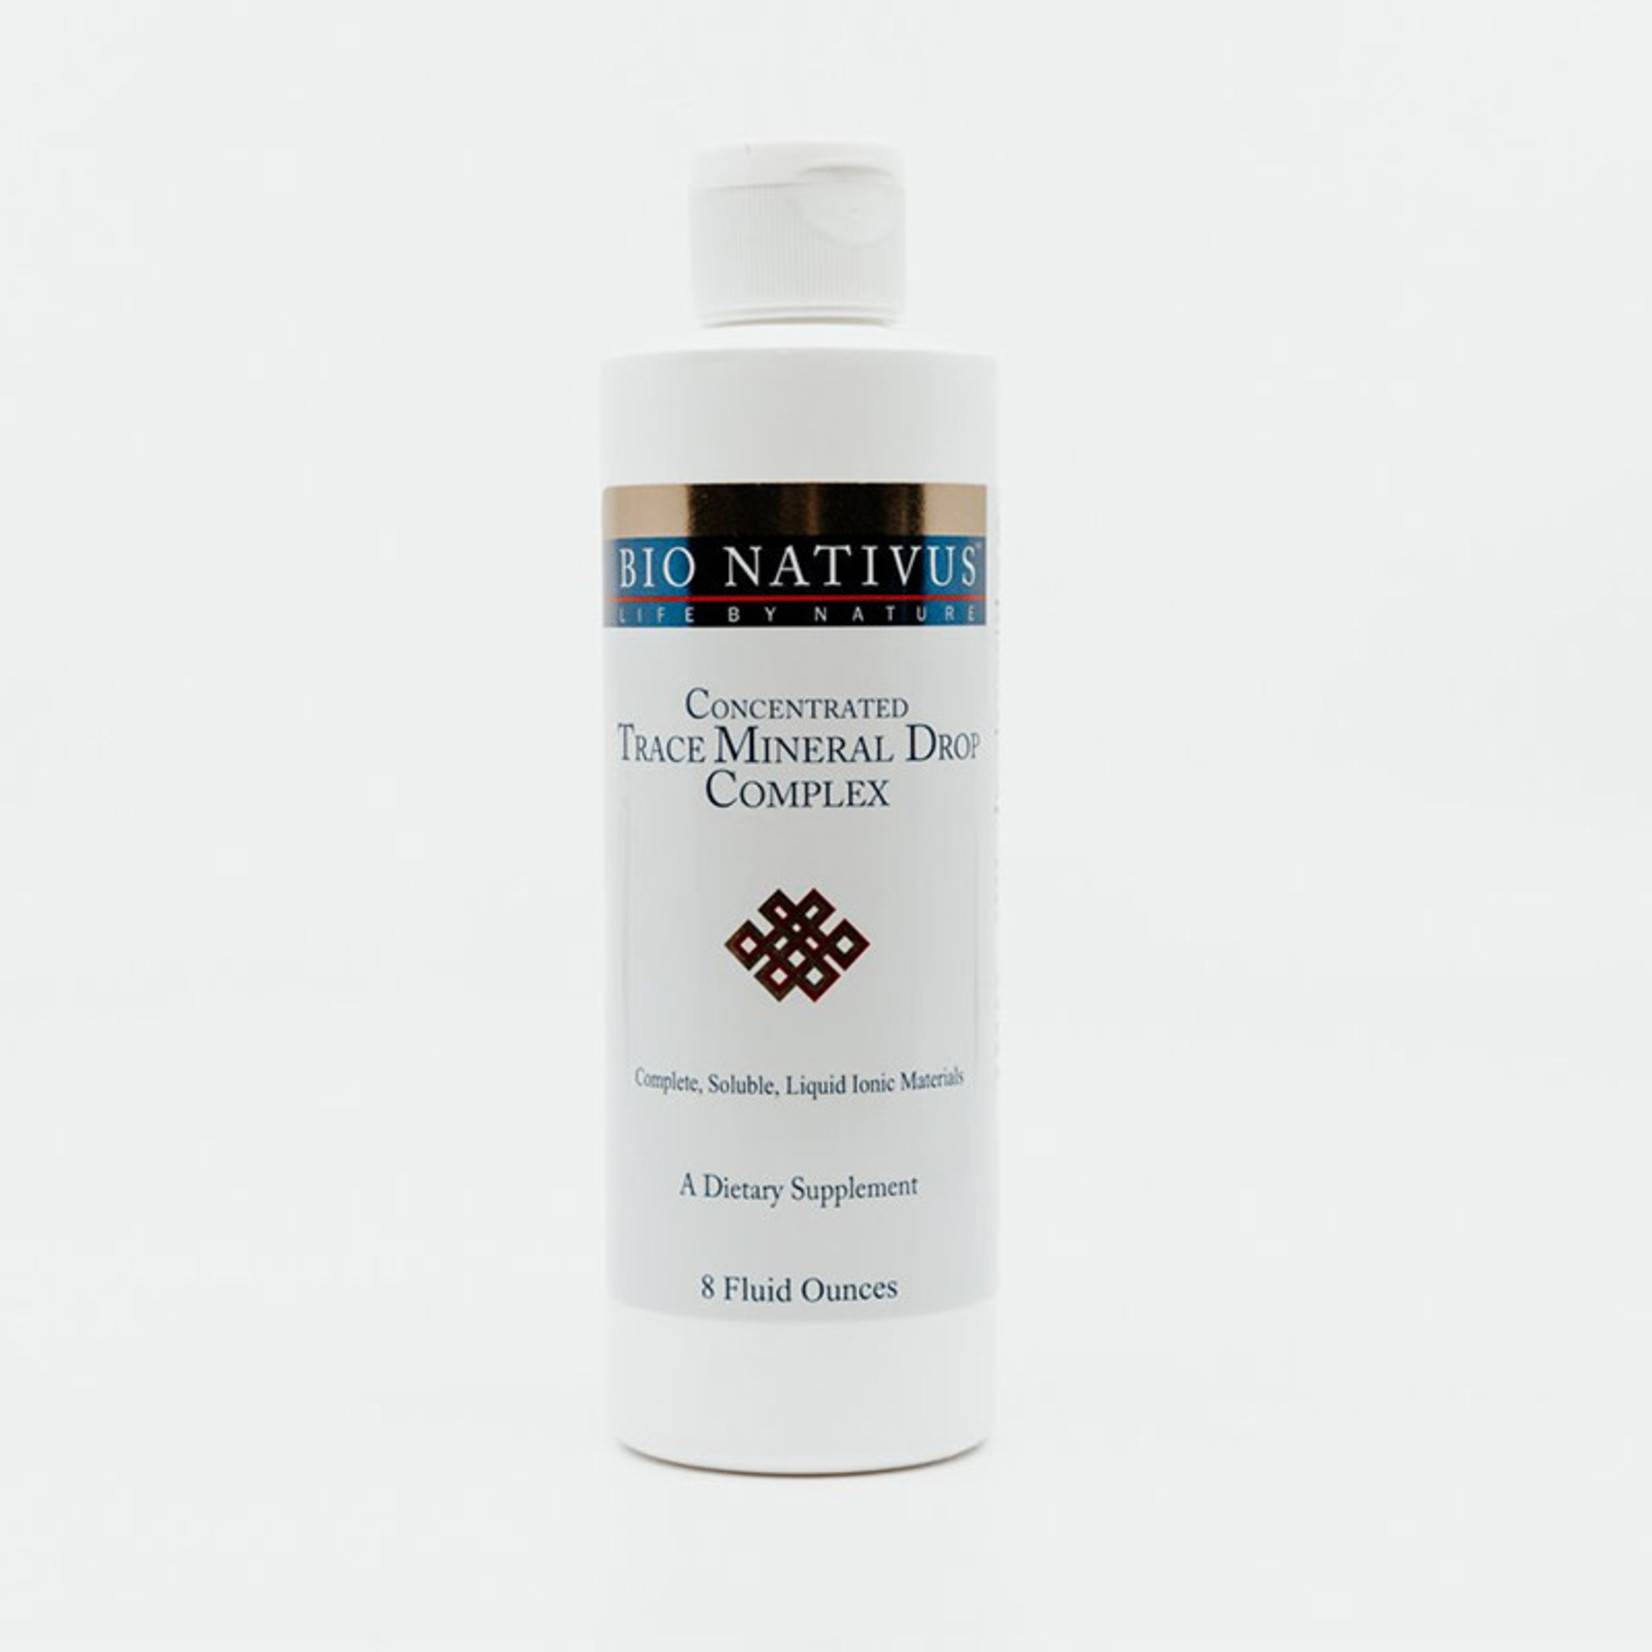 Concentrated Trace Mineral Drops